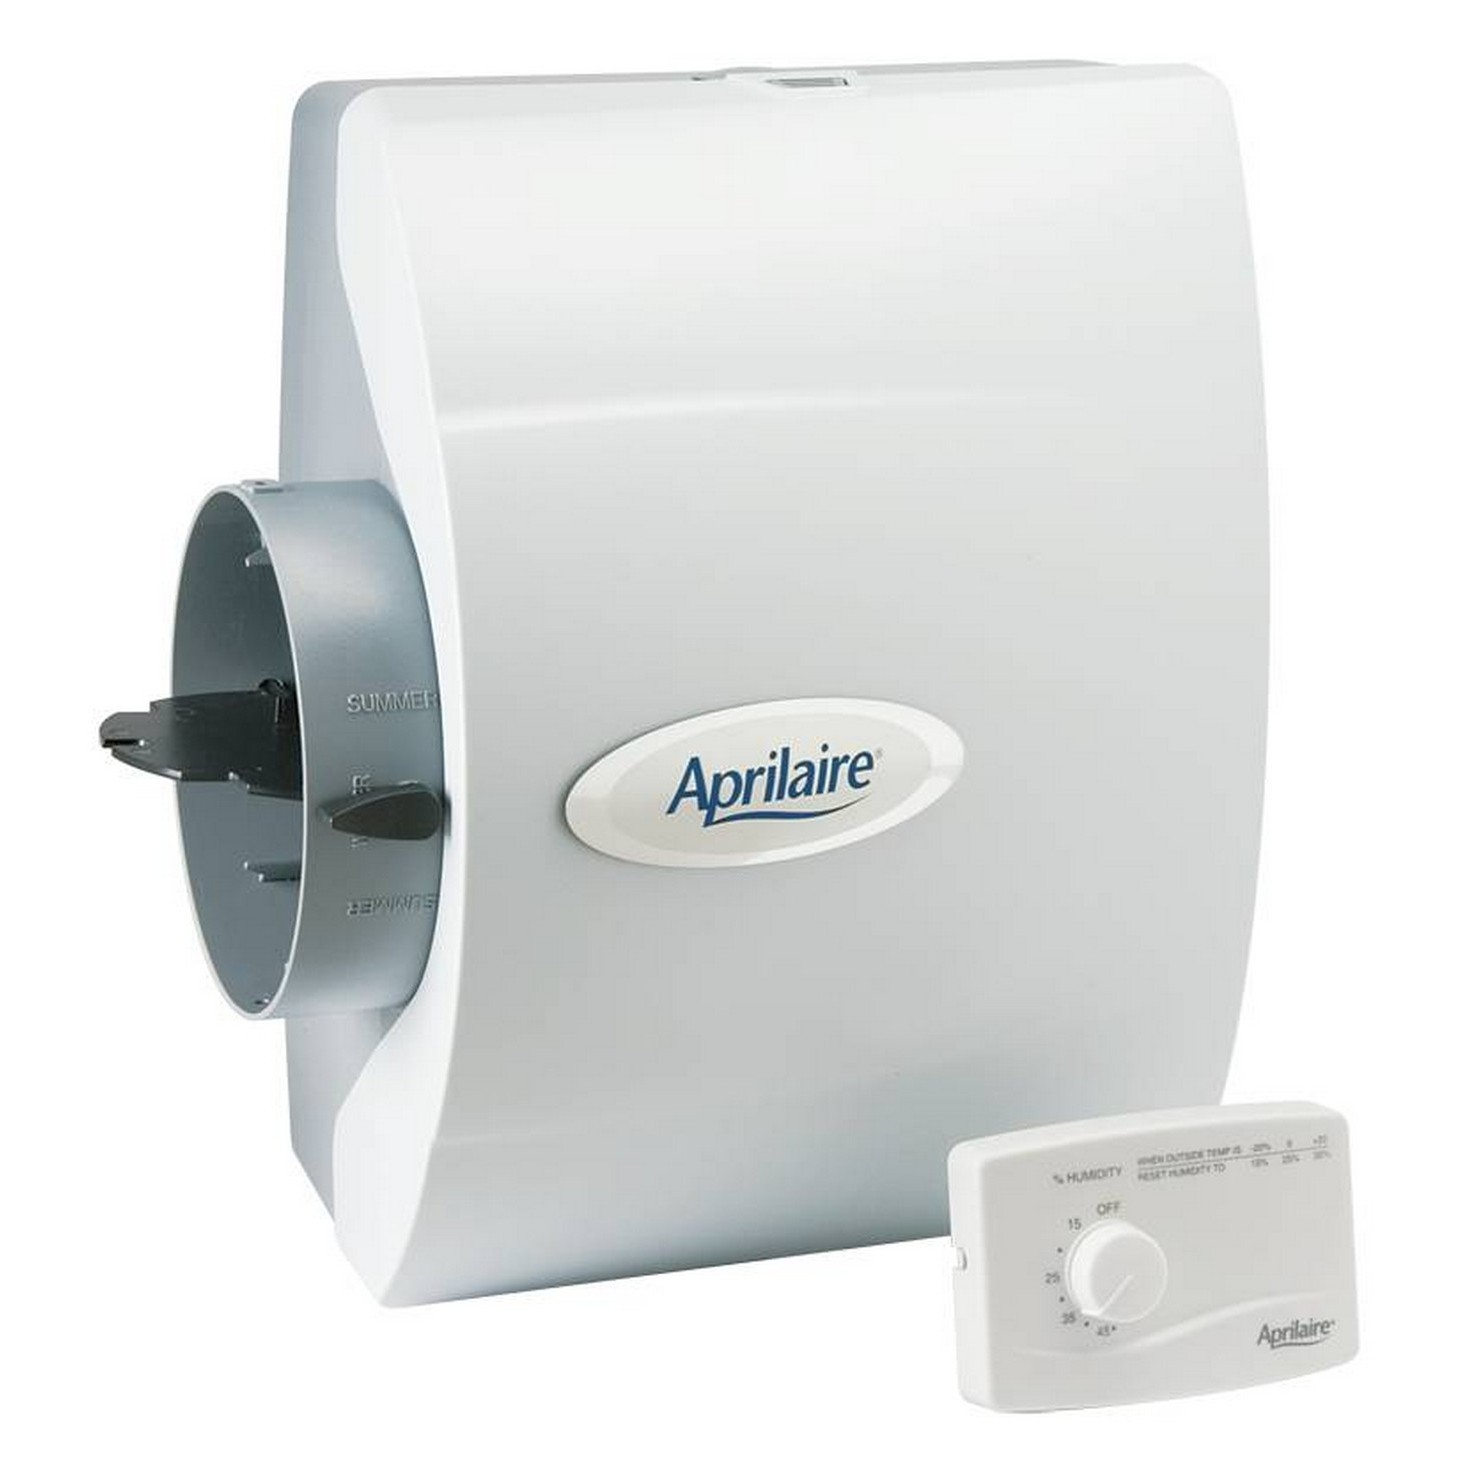 aprilaire 600m whole house humidifier aprilaire 600m bypass humidifier  #364C5B